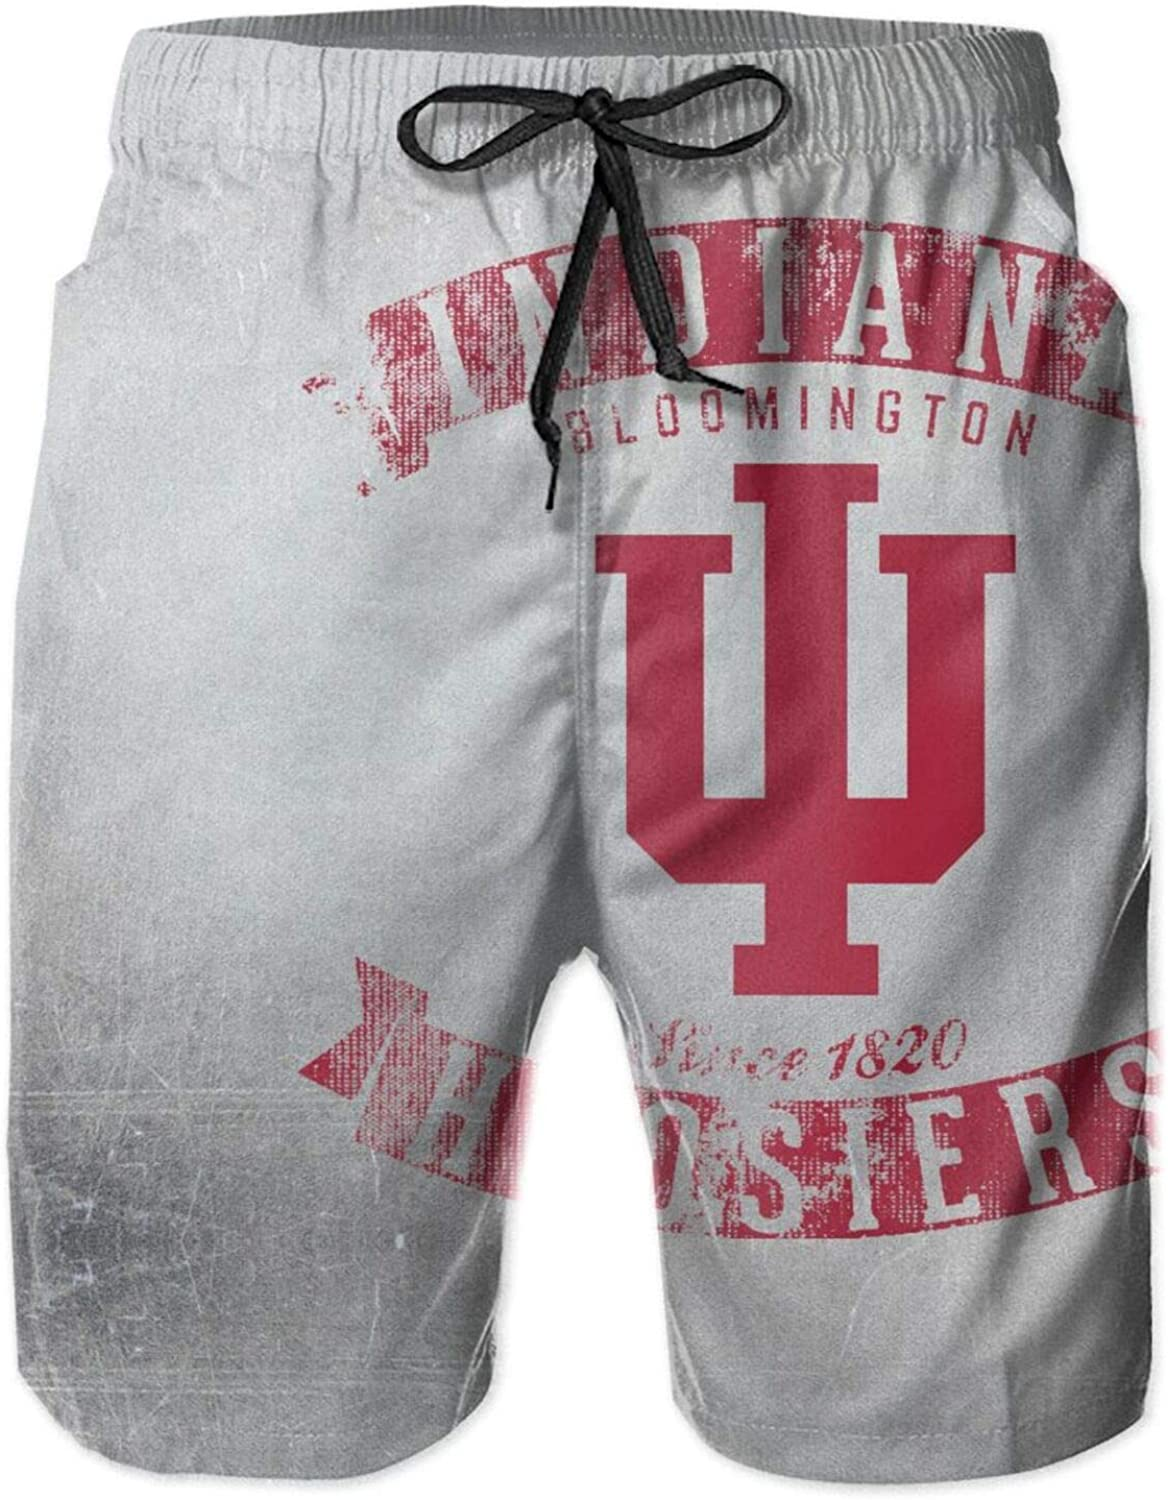 Chuanchuandedian Indiana University Men's Beach Shorts Quick Dry Casual Swim Trunks Swimming Pants